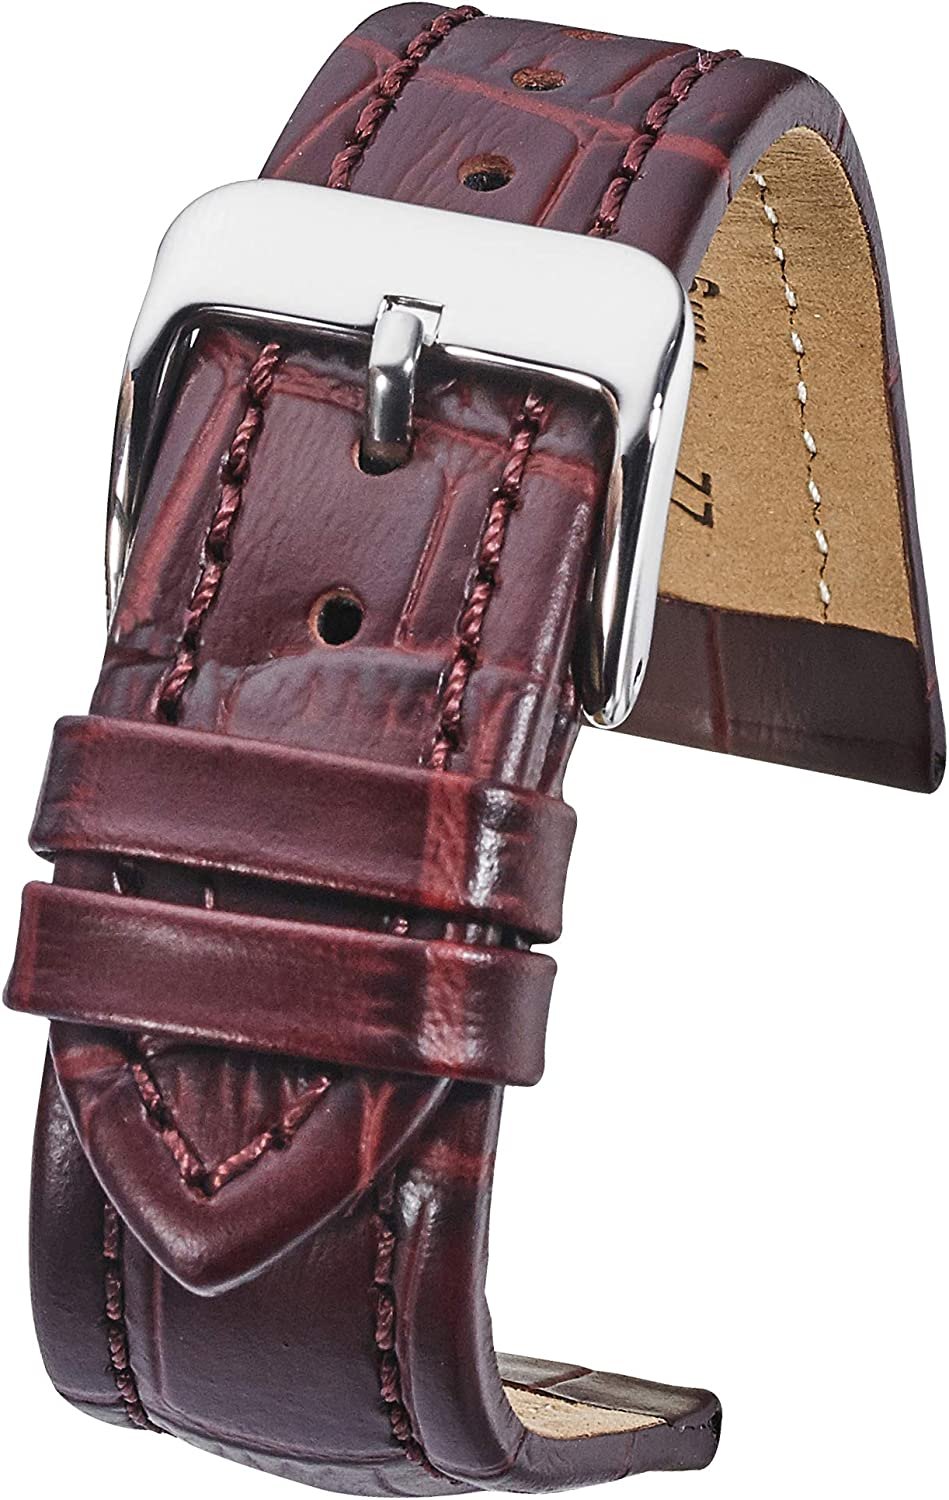 Alpine Genuine Padded Leather Watch Band in Alligator Grain Finish -Assorted 10 Colors in Sizes 18mm, 20mm, 22mm & 24mm